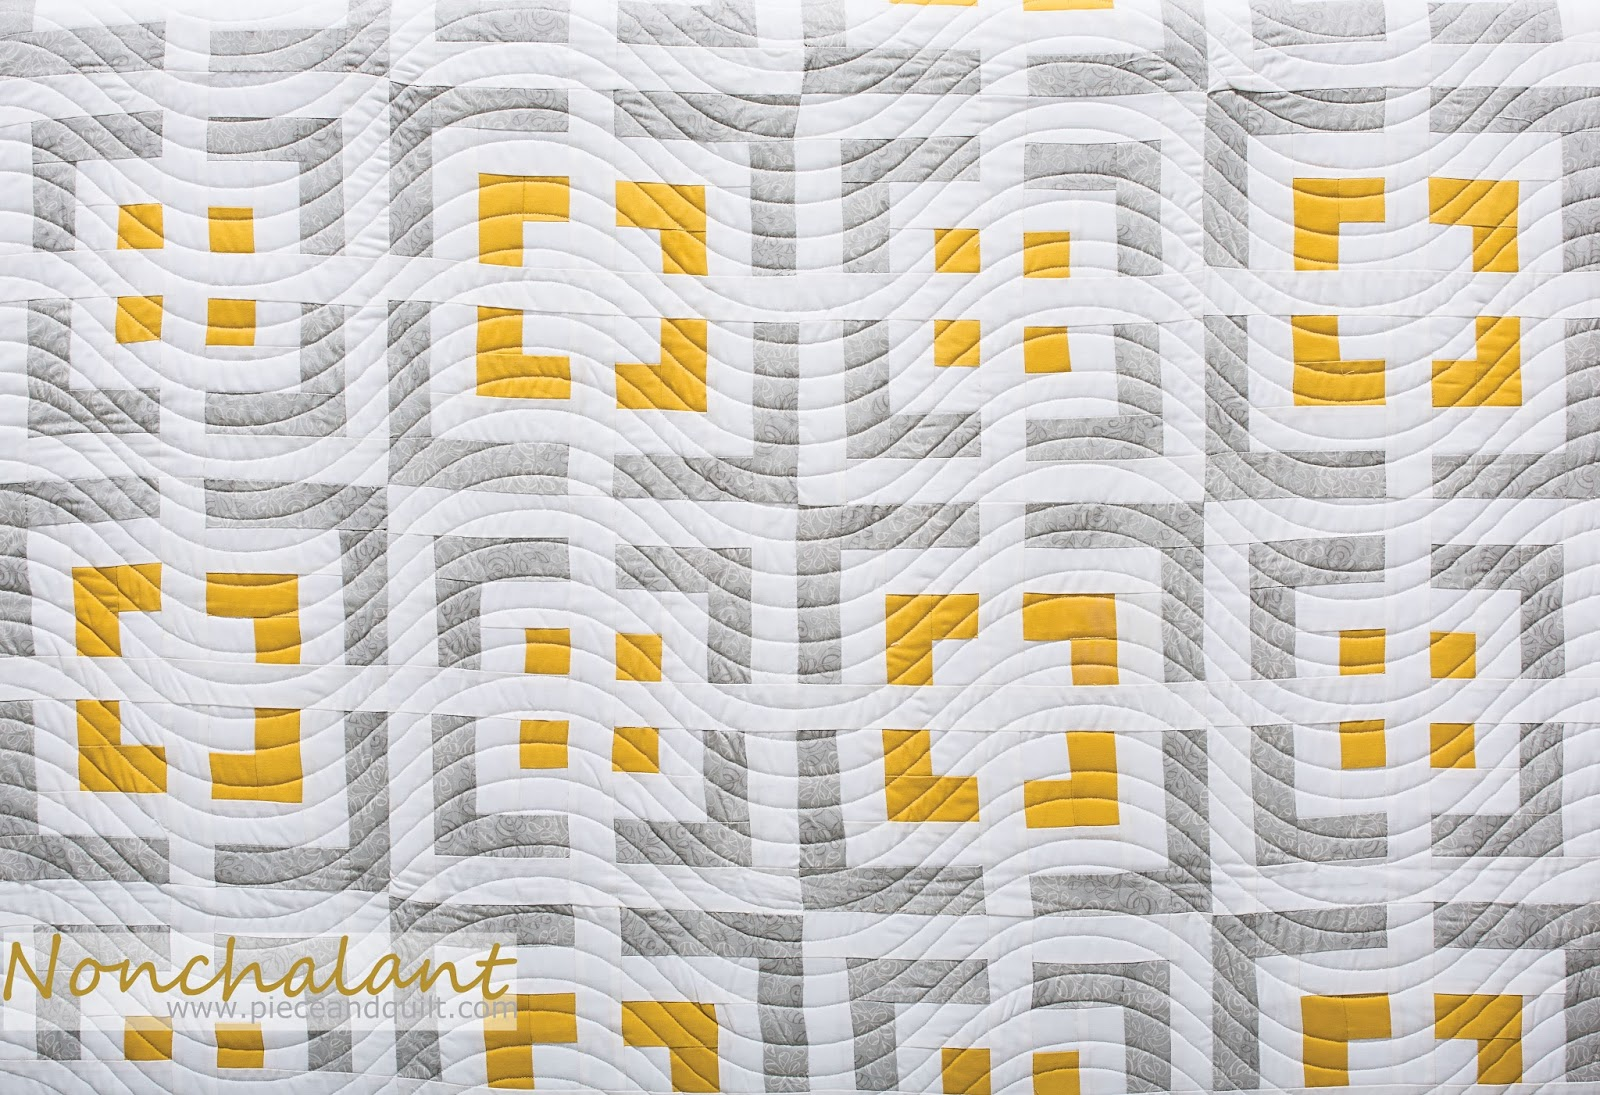 piece n quilt nonchalant  cabin fever  modern log cabin quilts - i really love this quilt and when i was ready to machine quilt it i choseto quilt an edge to edge wave pattern because the quilt is so geometricand crisp